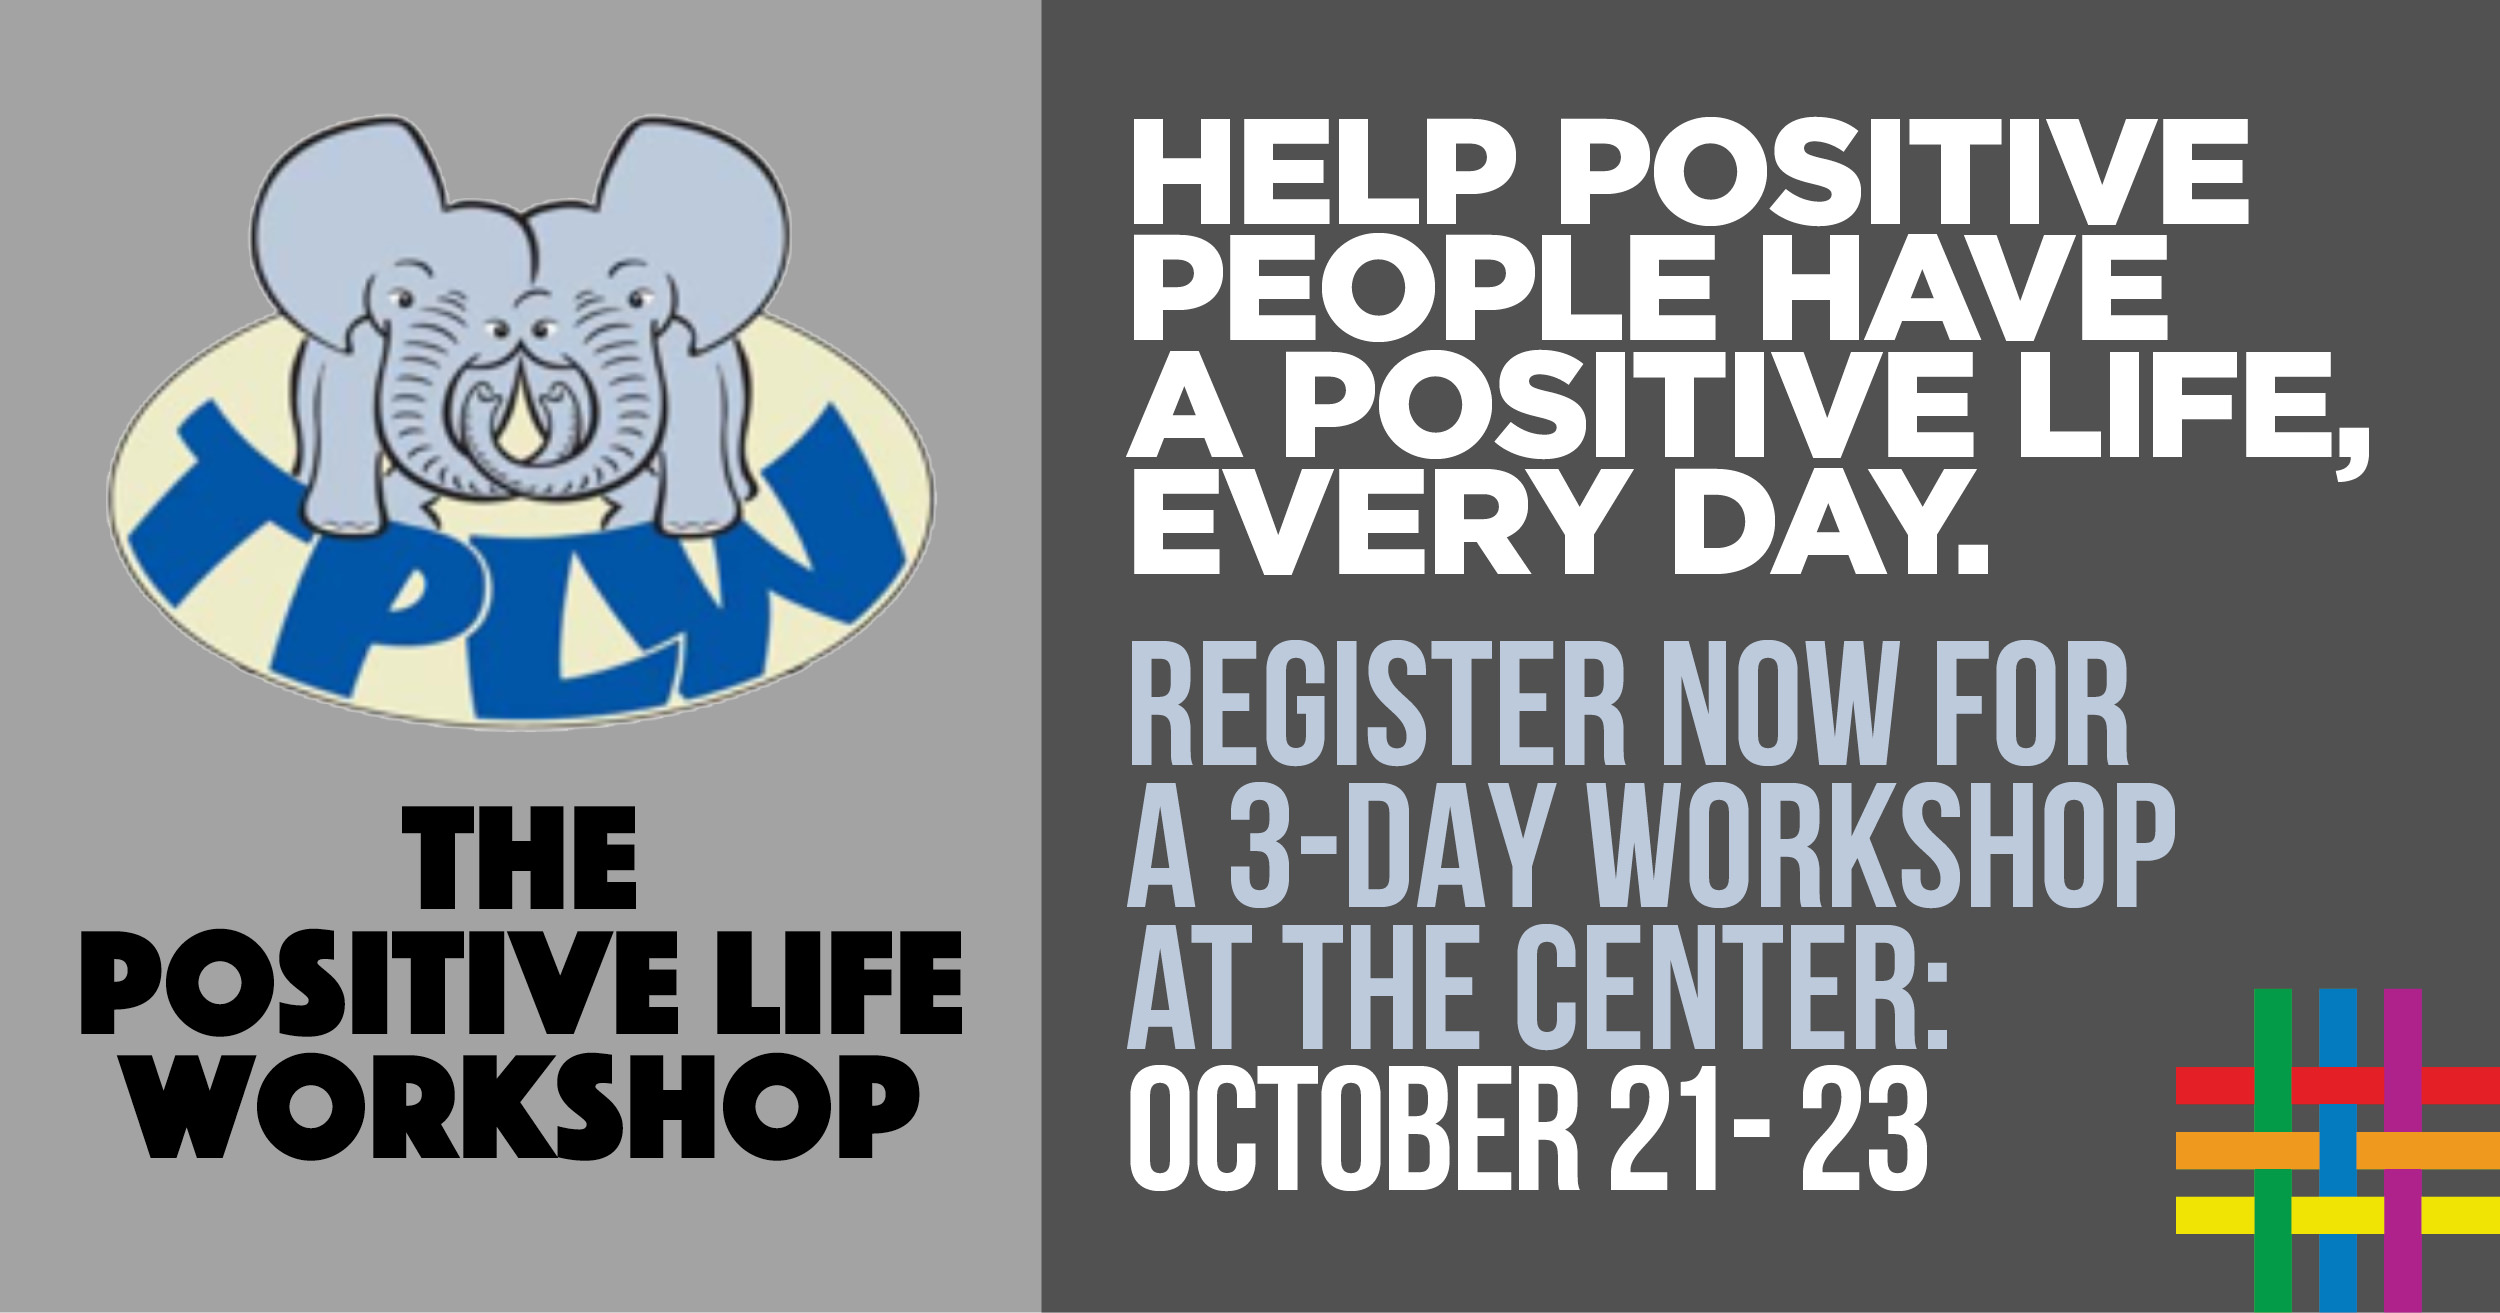 The Positive Life Workshop at Brooklyn Community Pride Center